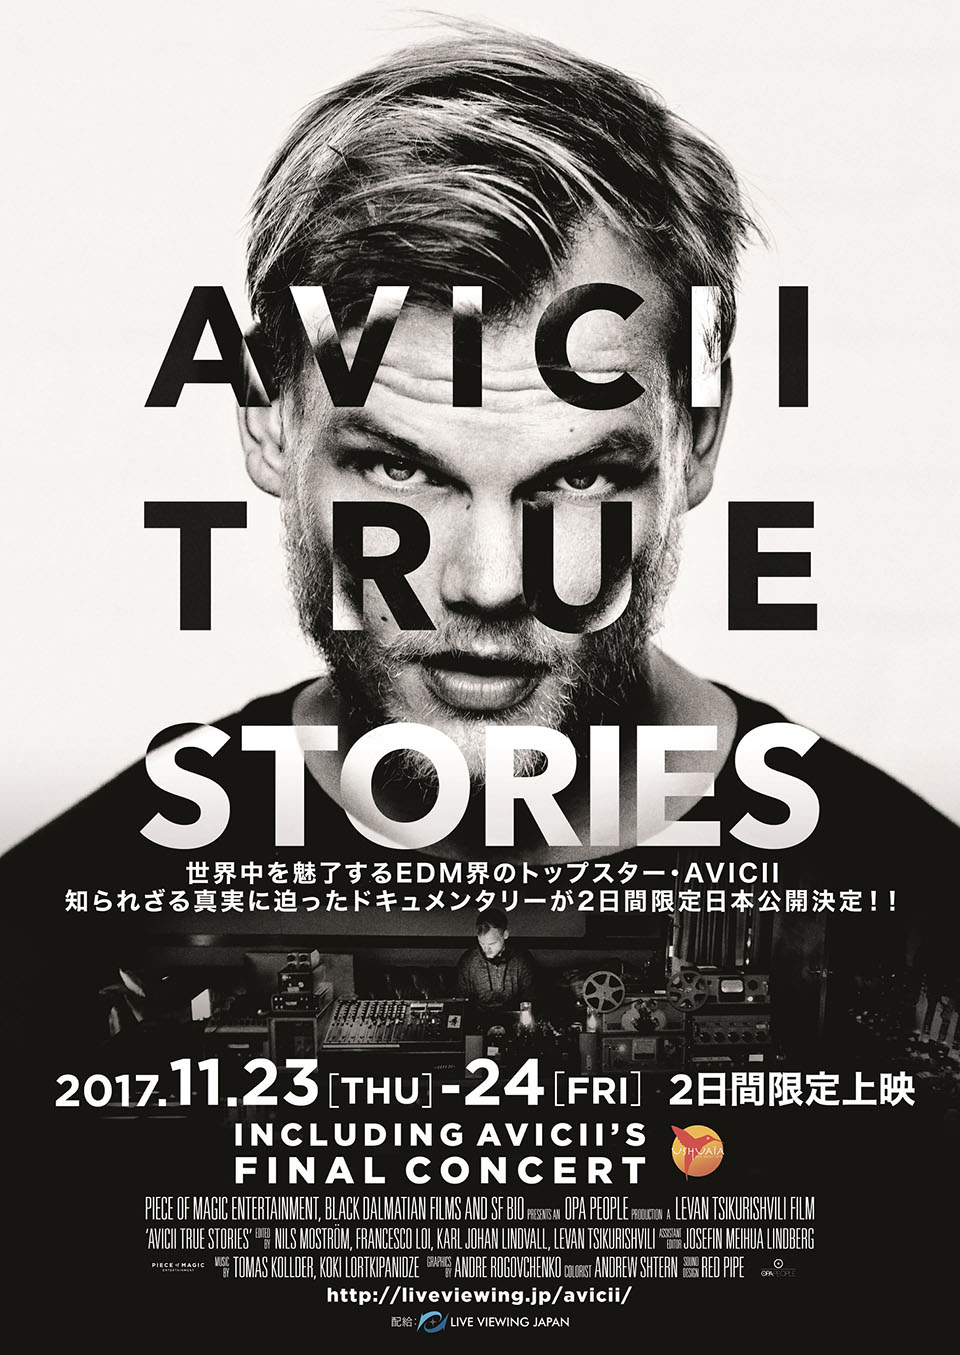 Avicii_True_Stories